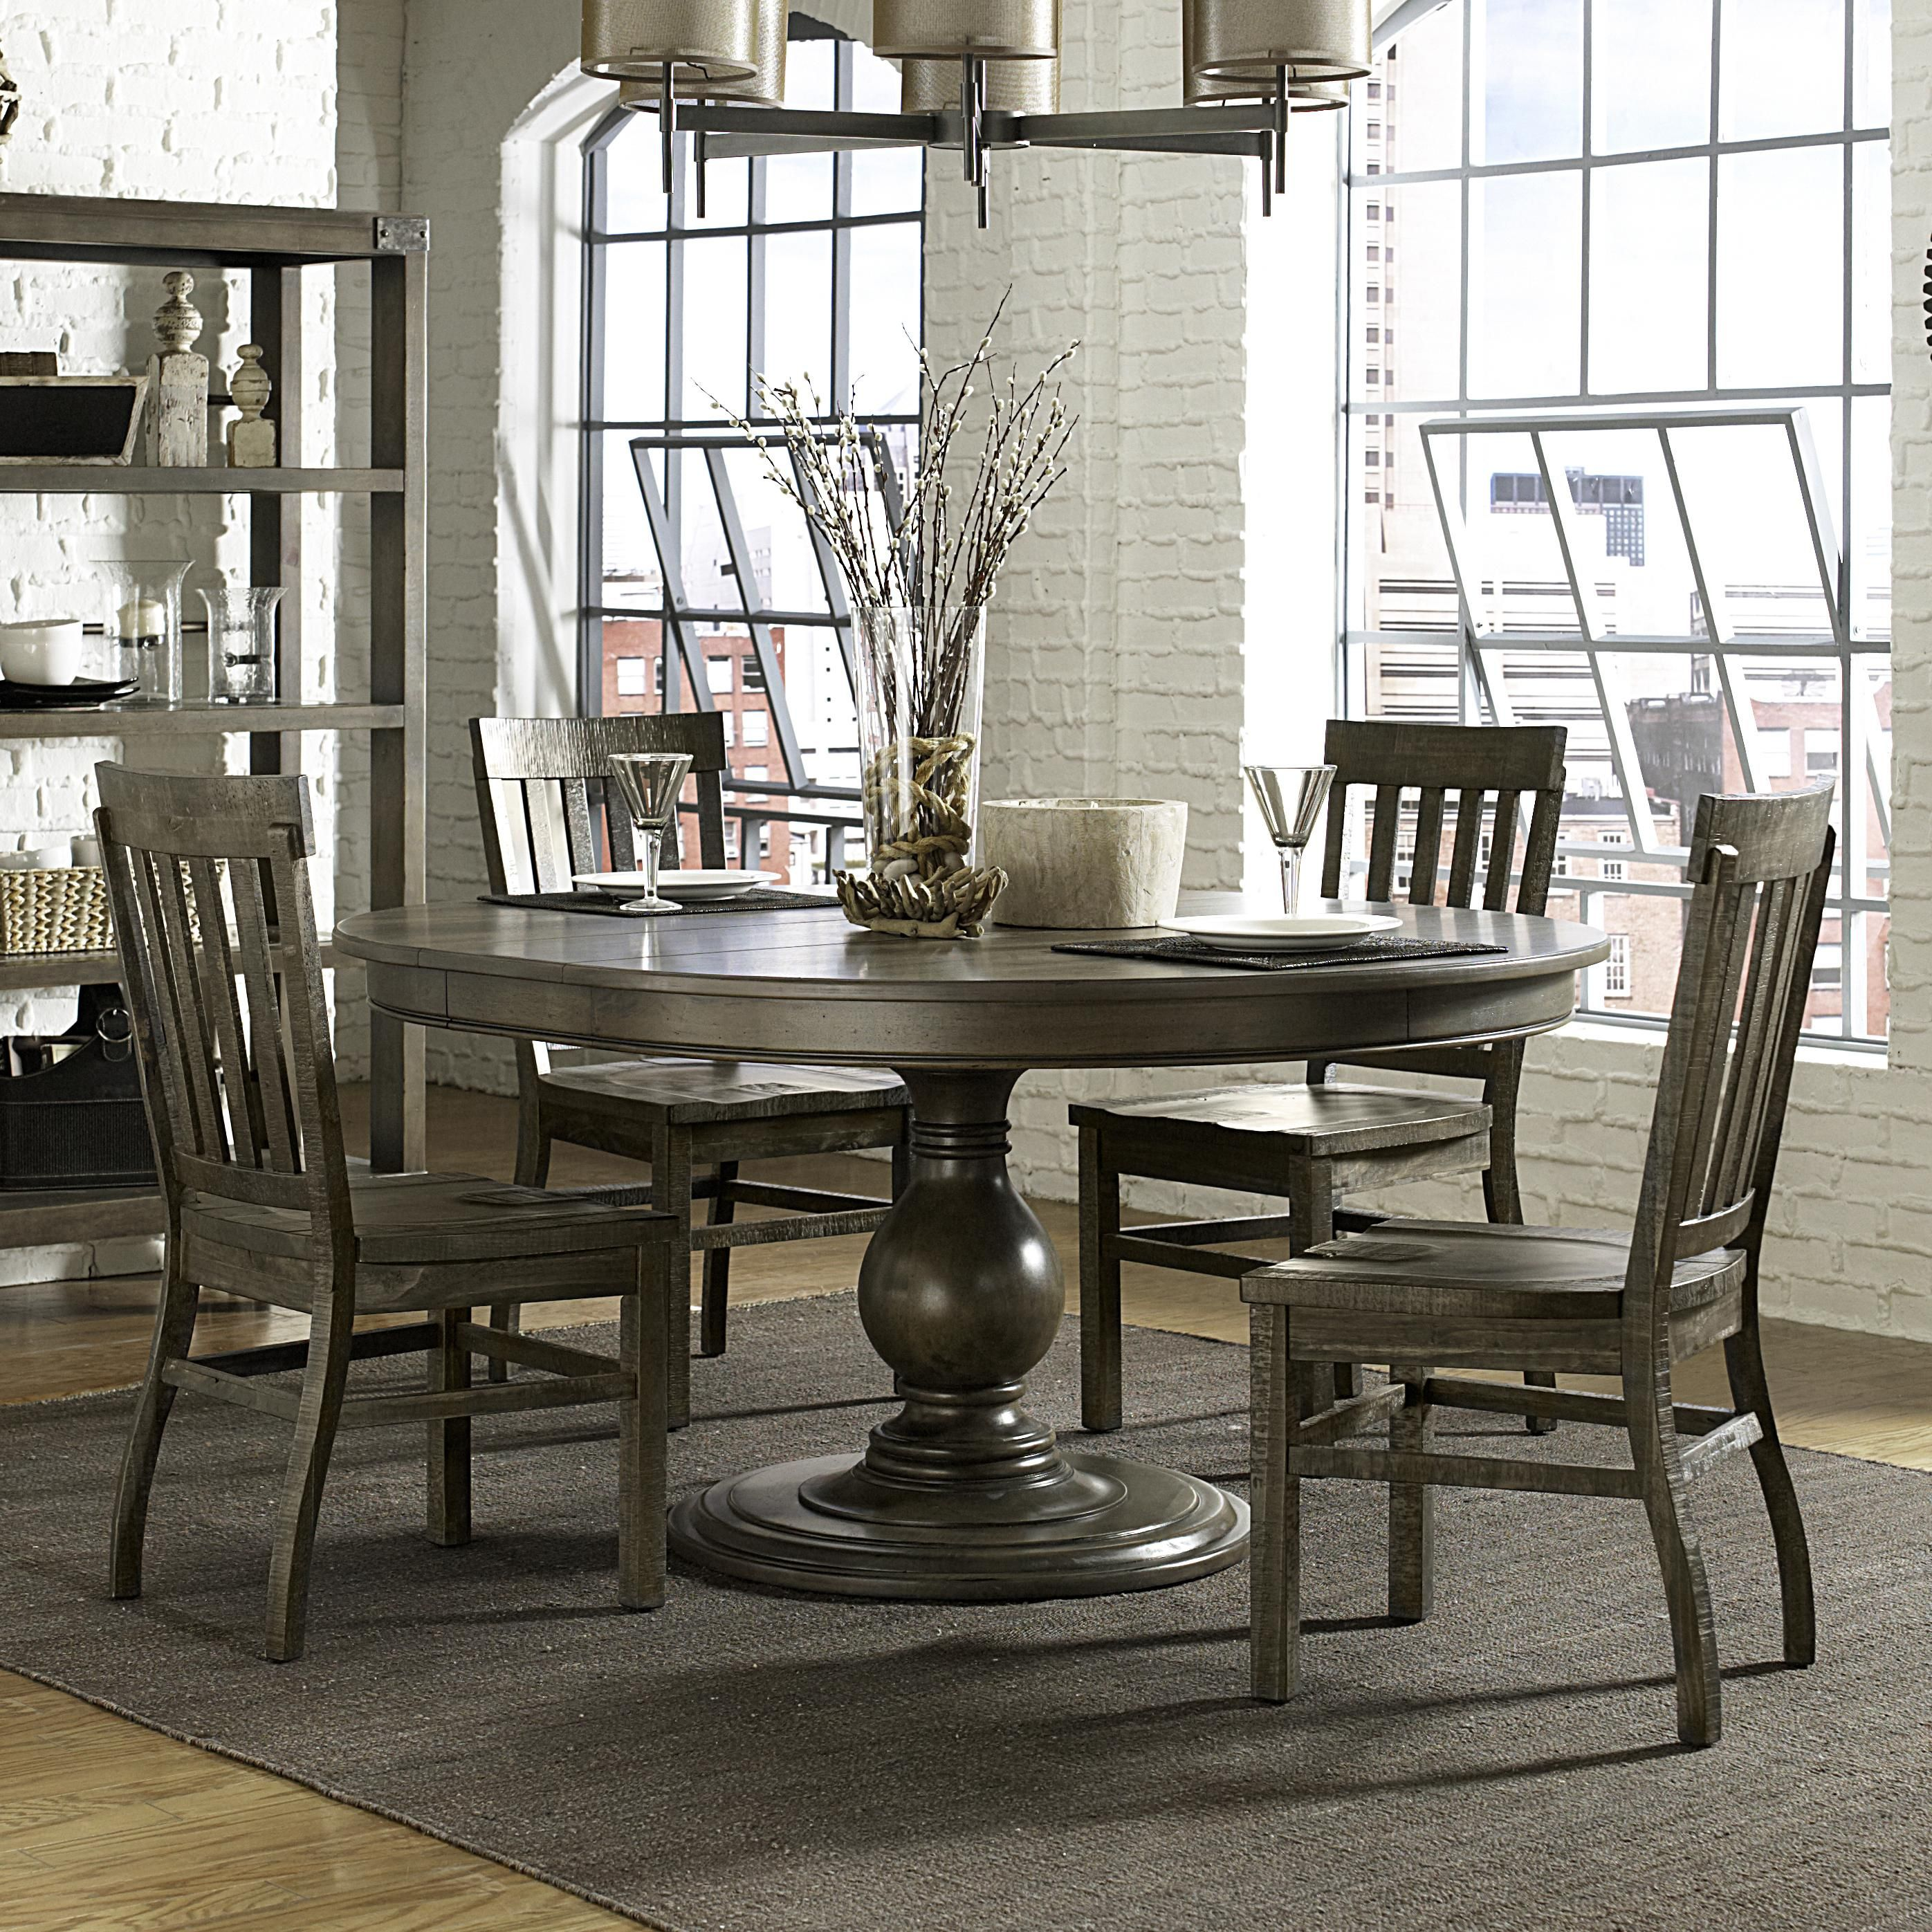 Karlin 5 Piece Table And Chair Set By Magnussen Home Round Wood